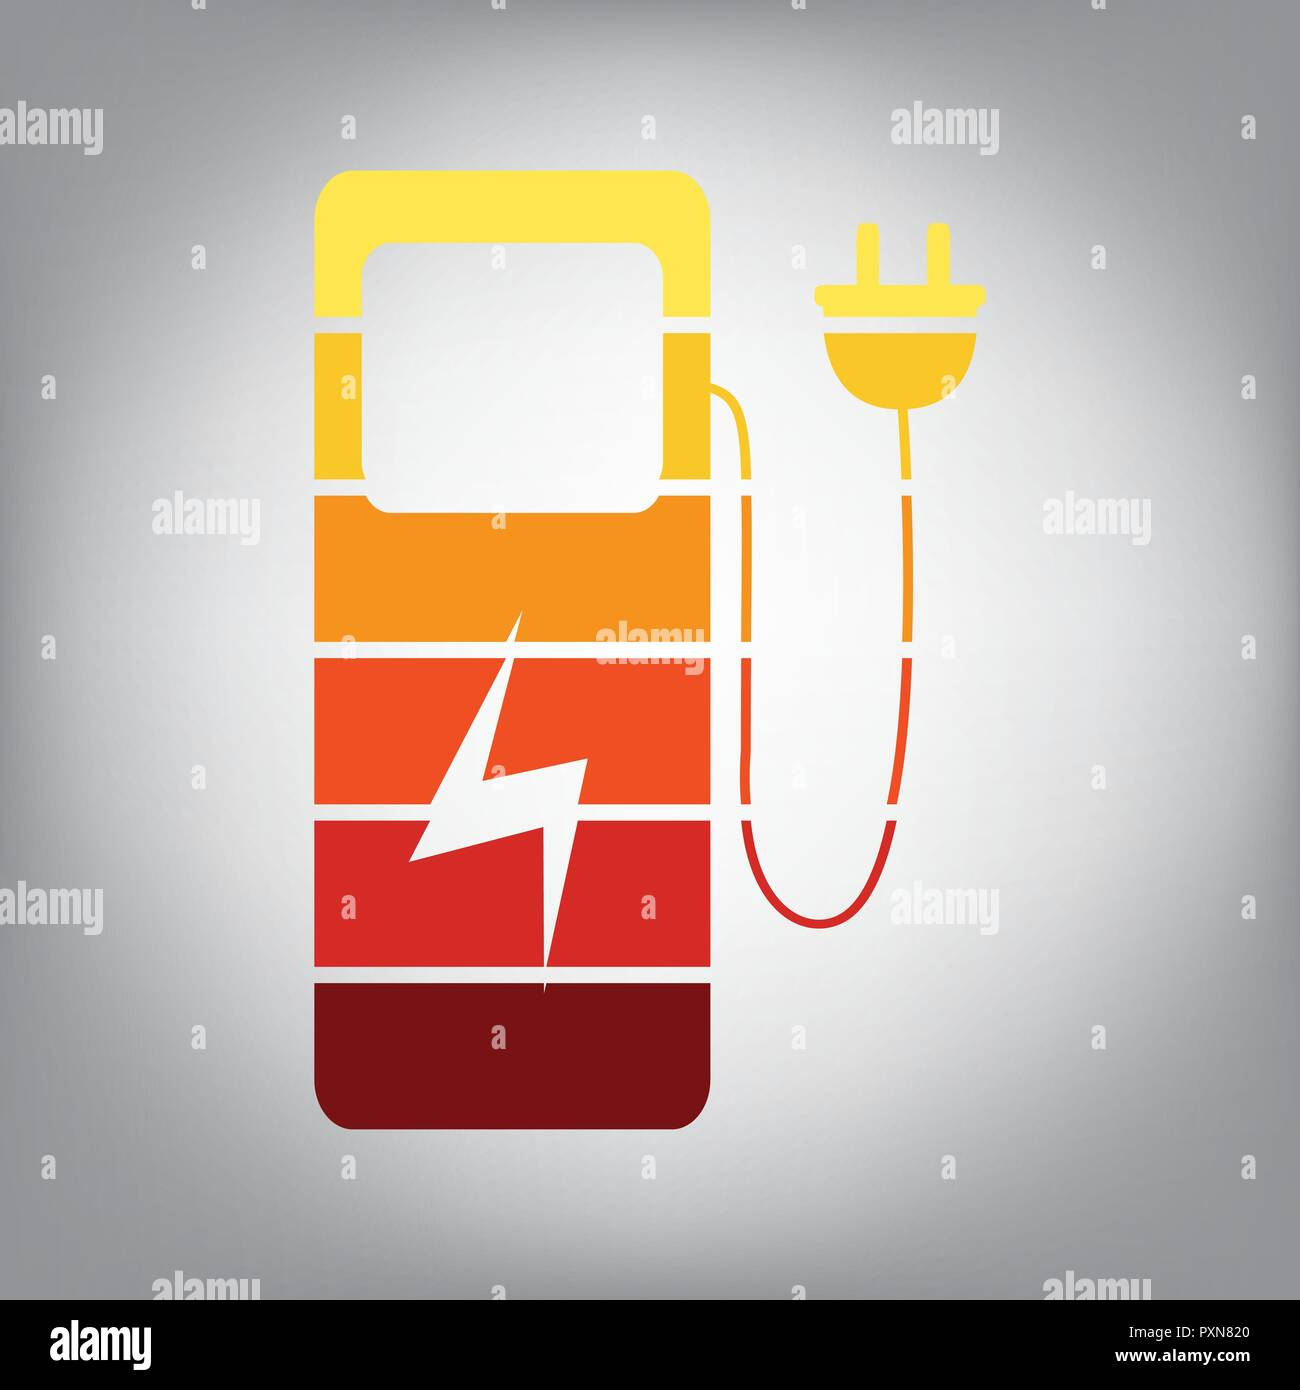 Electric Car Charging Station Sign Vector Horizontally Sliced Icon Charger Diagram With Colors From Sunny Gradient In Gray Background